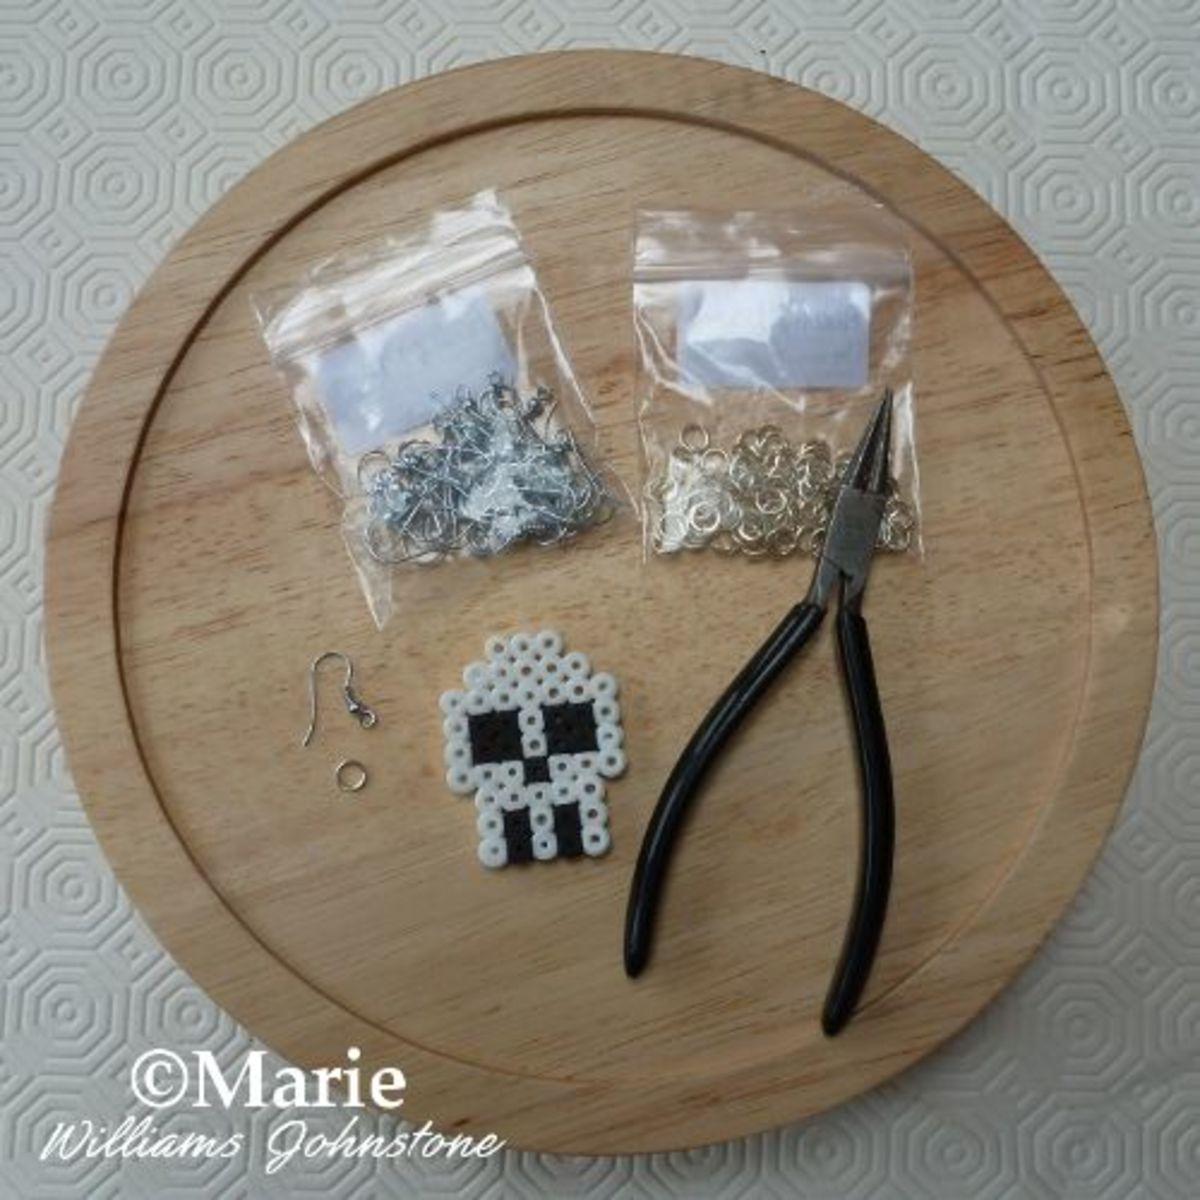 Turn finished Perler and Hama bead designs into wearable jewelry using basic tools.